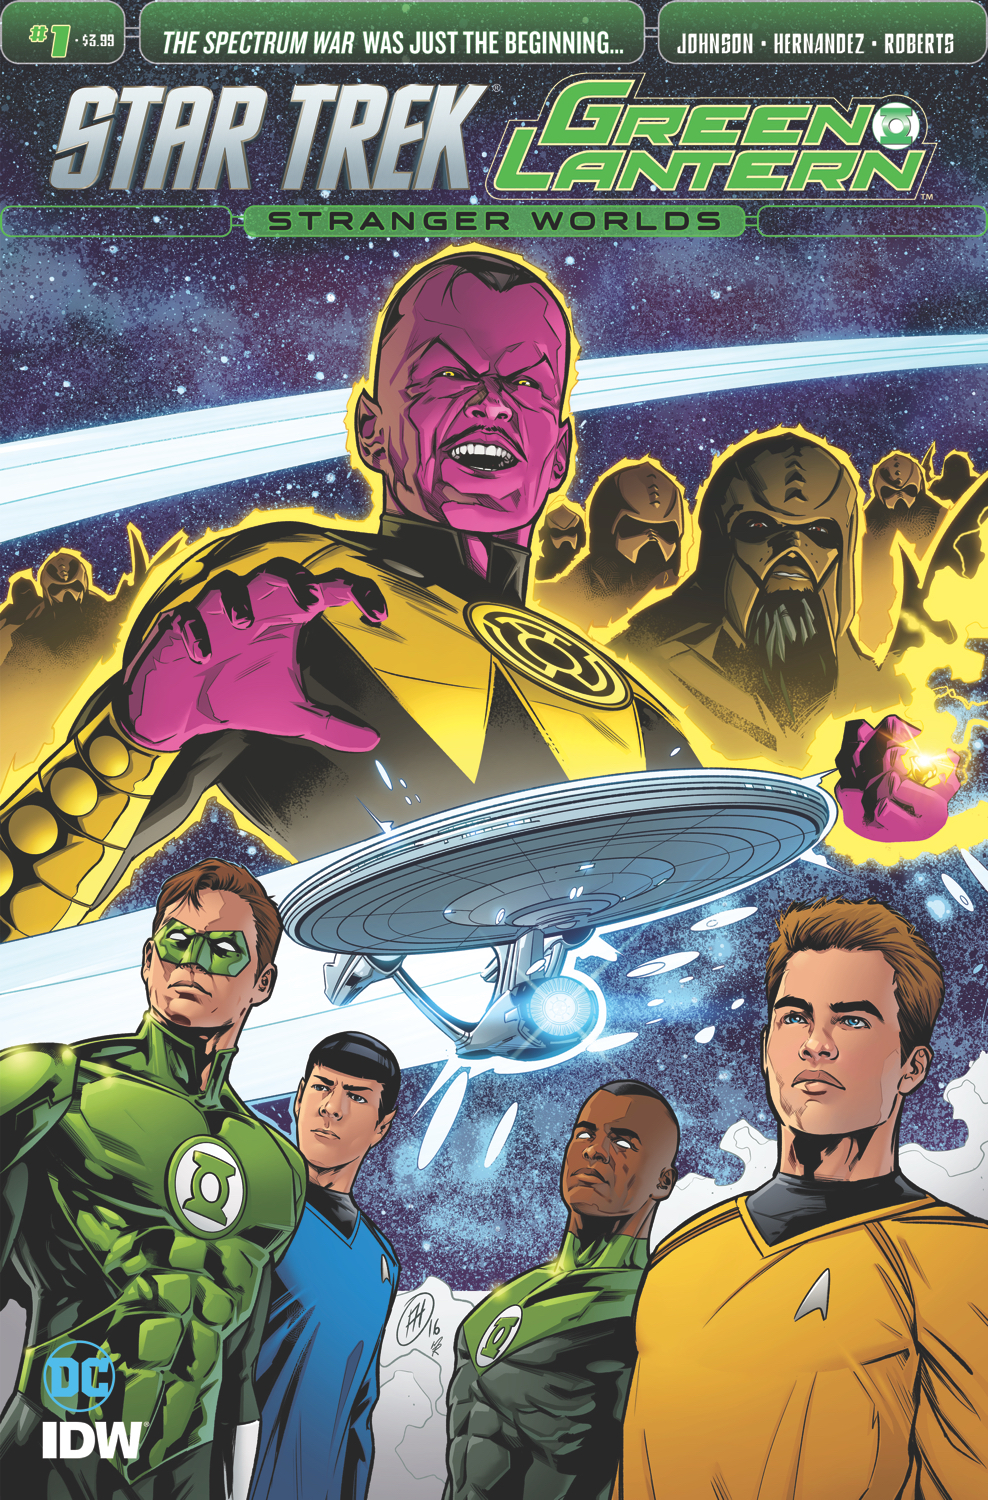 STAR TREK GREEN LANTERN VOL 2 #1